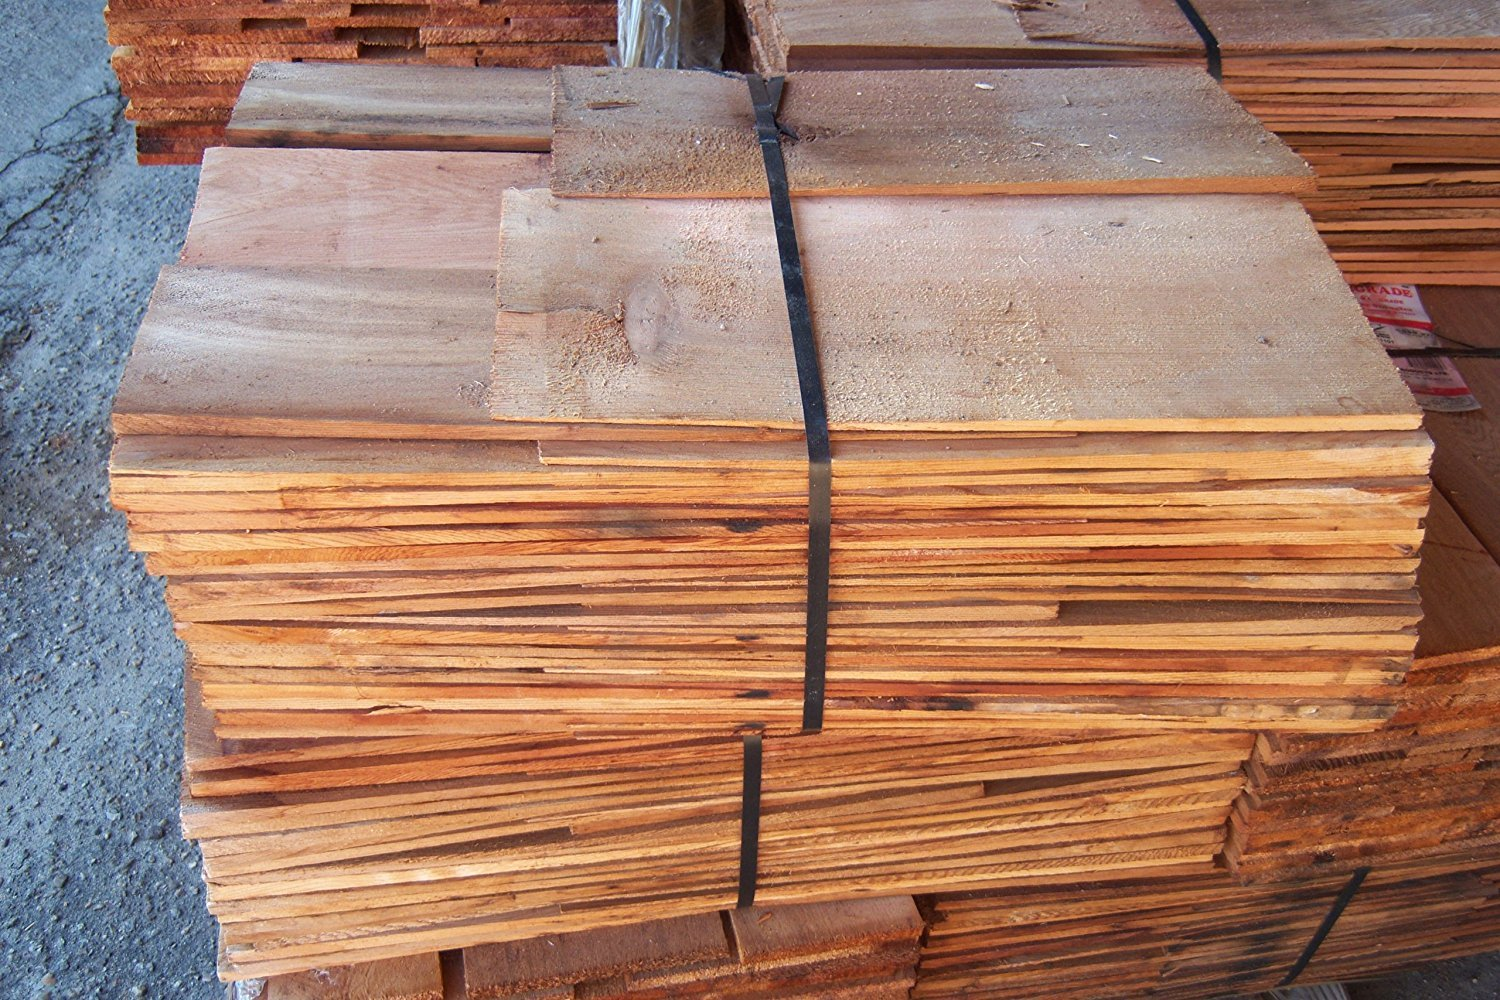 Western Red Cedar Shingles Red Label in Contractor Packs [CAPITOL CITY LUMBER] by AMAKE